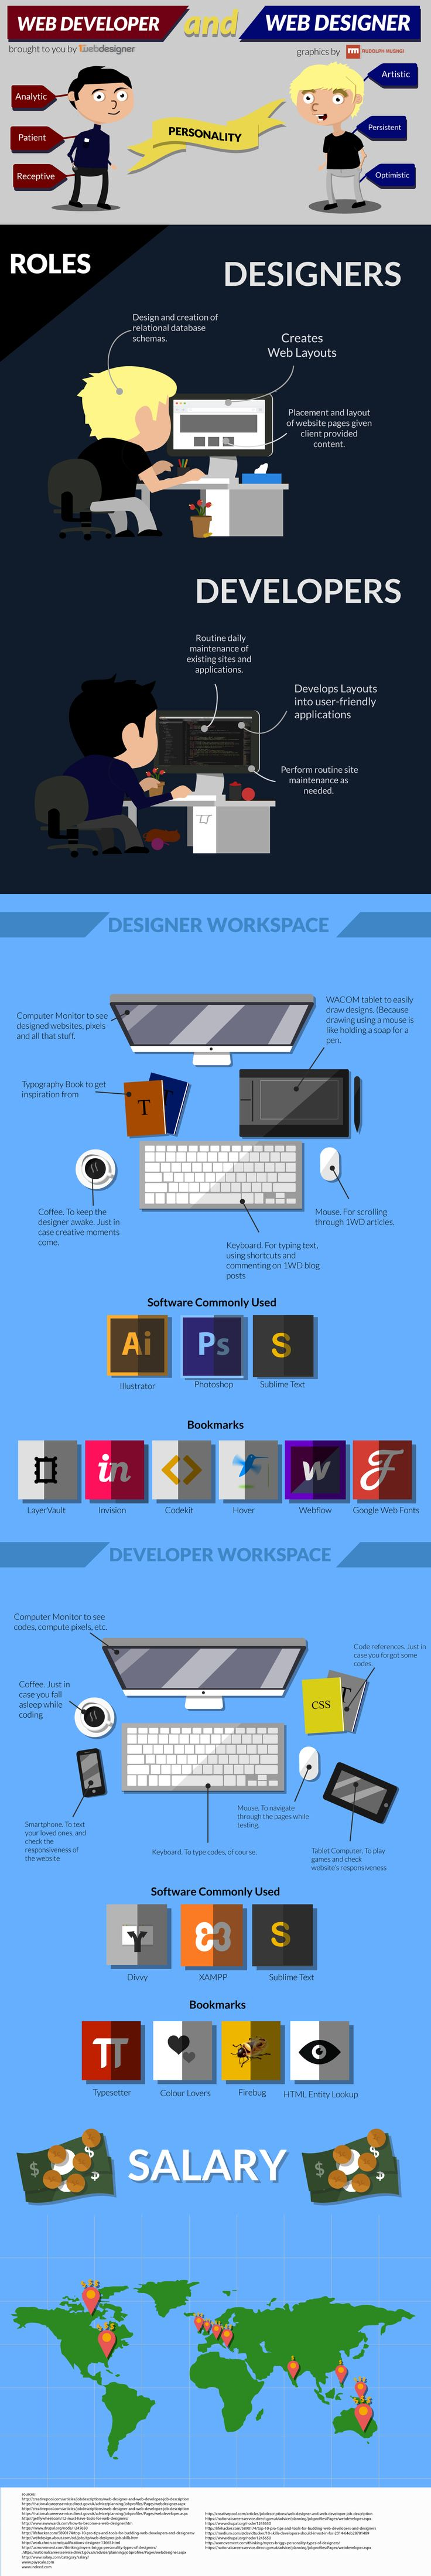 (Another) Web Designer vs Web Developer